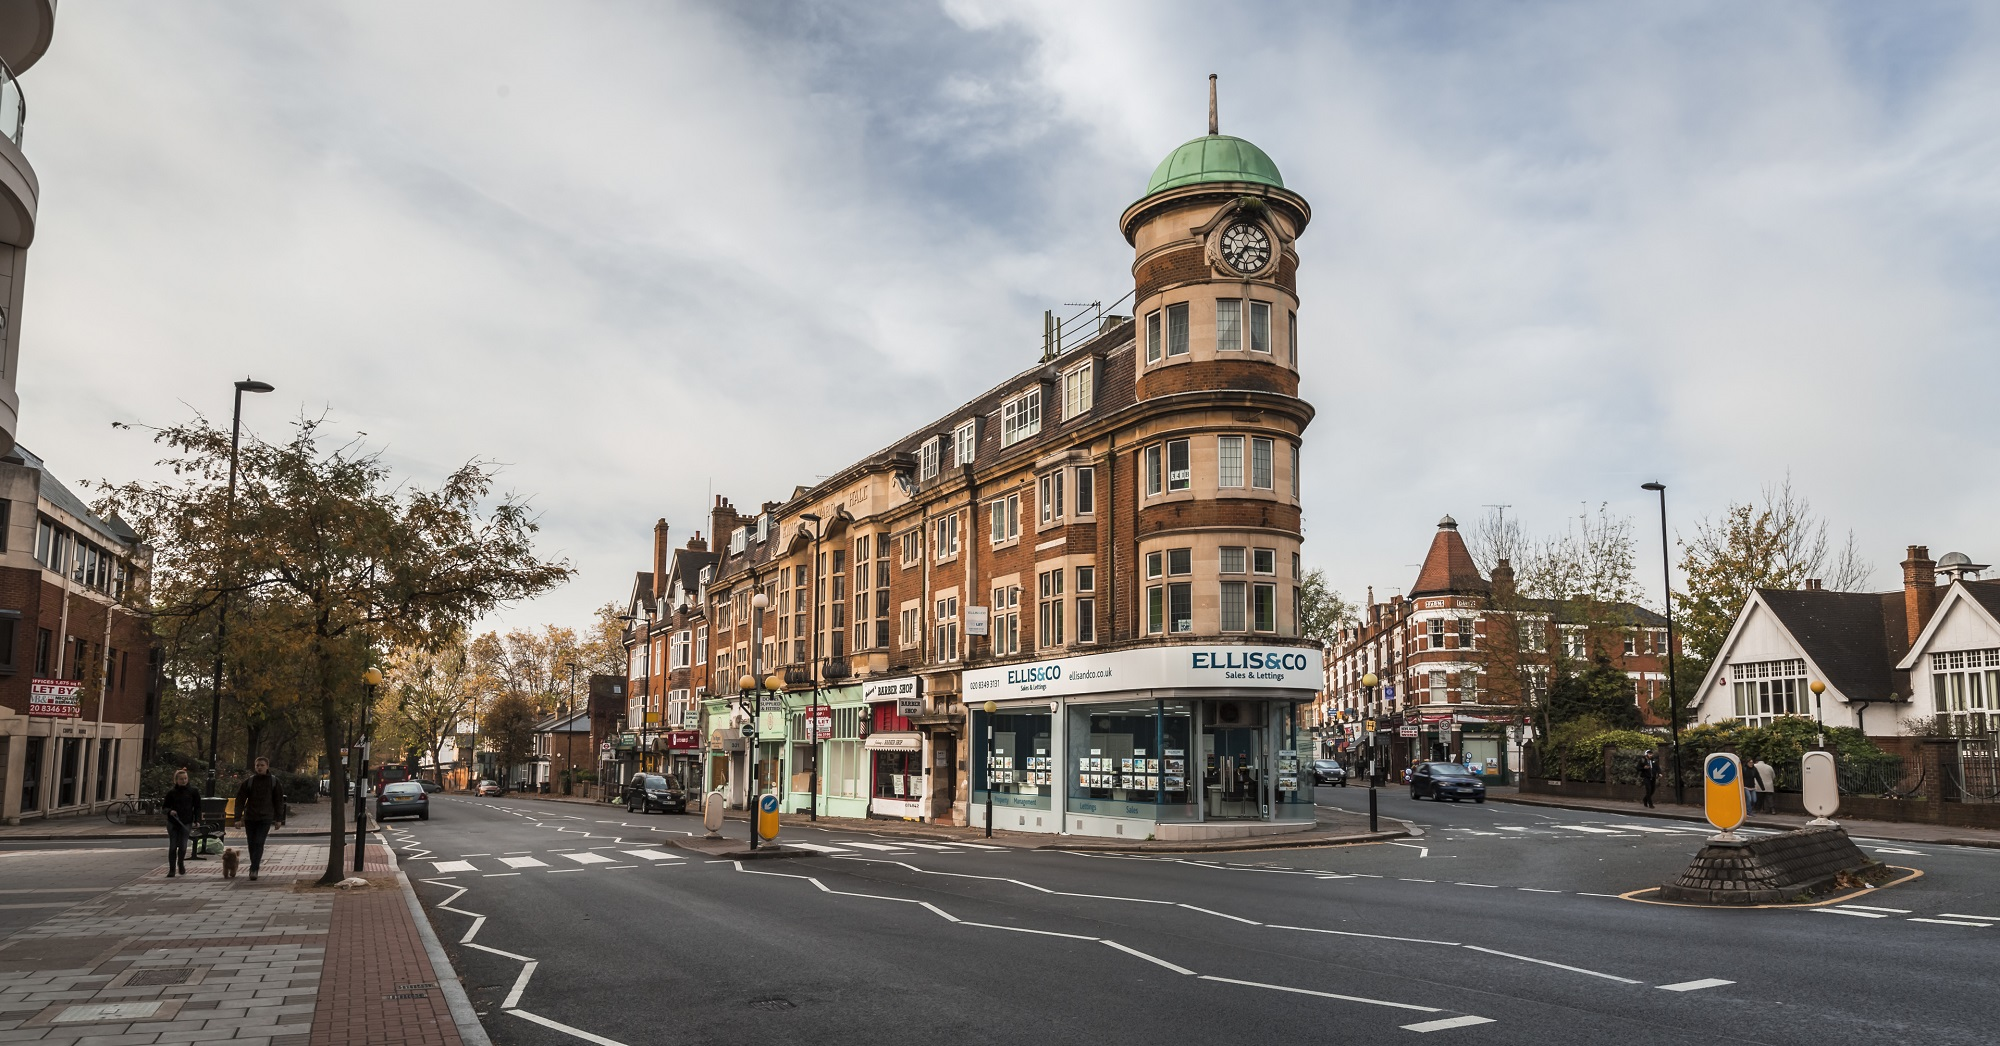 Houses for sale: Top 5 properties to buy in Finchley